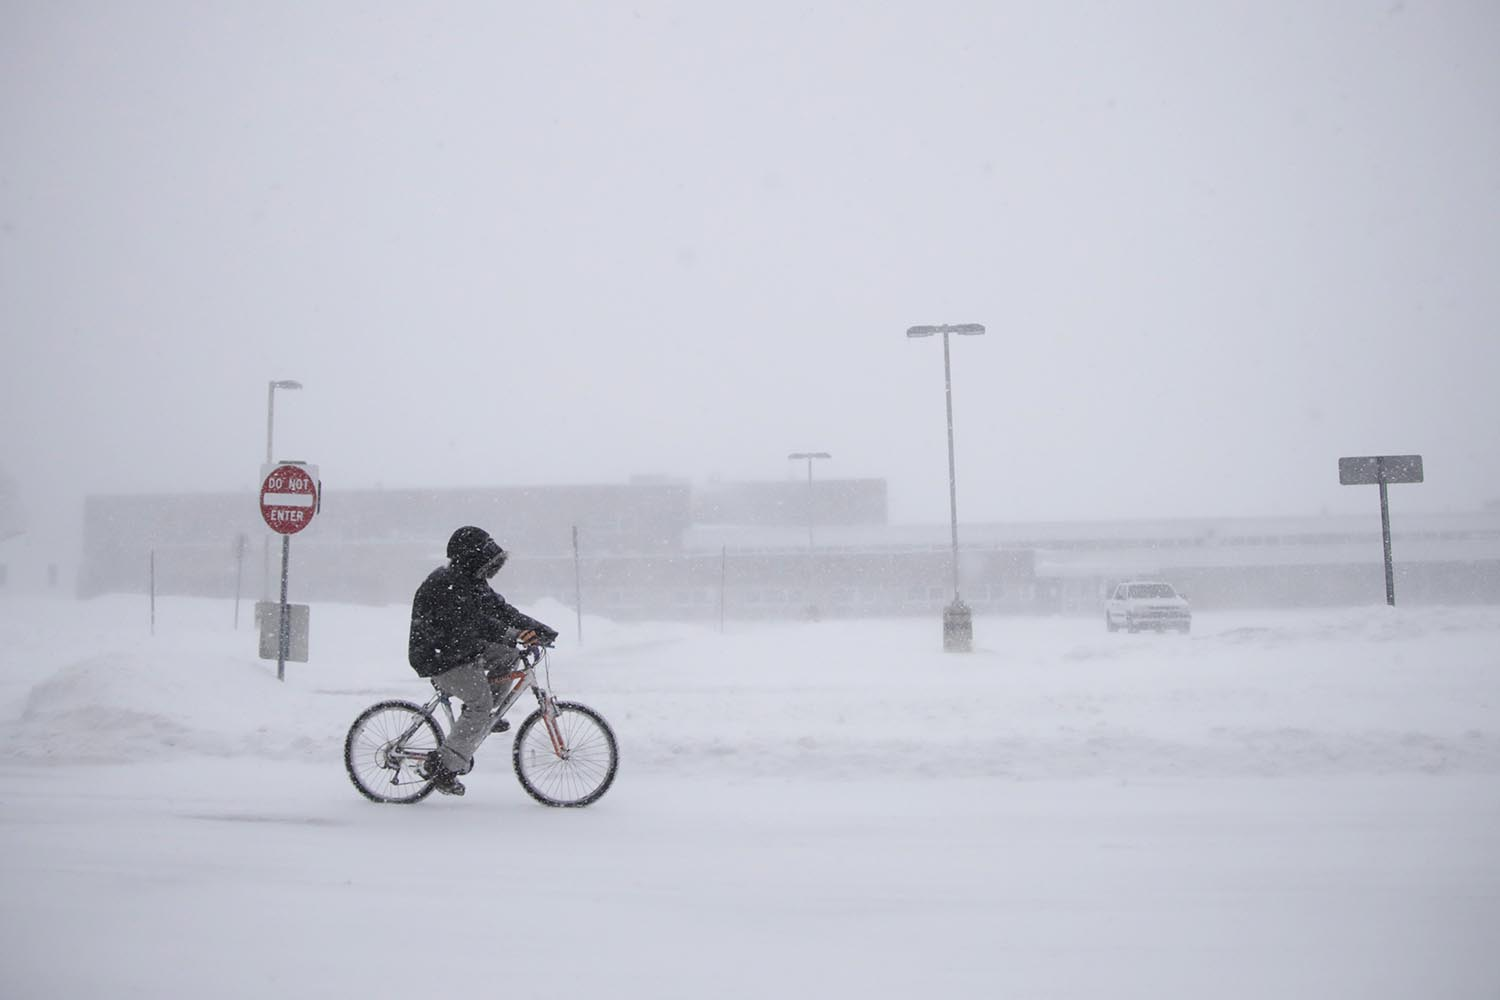 <div class='meta'><div class='origin-logo' data-origin='AP'></div><span class='caption-text' data-credit='AP Photo/Julio Cortez'>Justin Hartman rides his bicycle along New Bedford Road in whiteout conditions during a snowstorm, Thursday, Jan. 4, 2018, in Wall Township, N.J.</span></div>